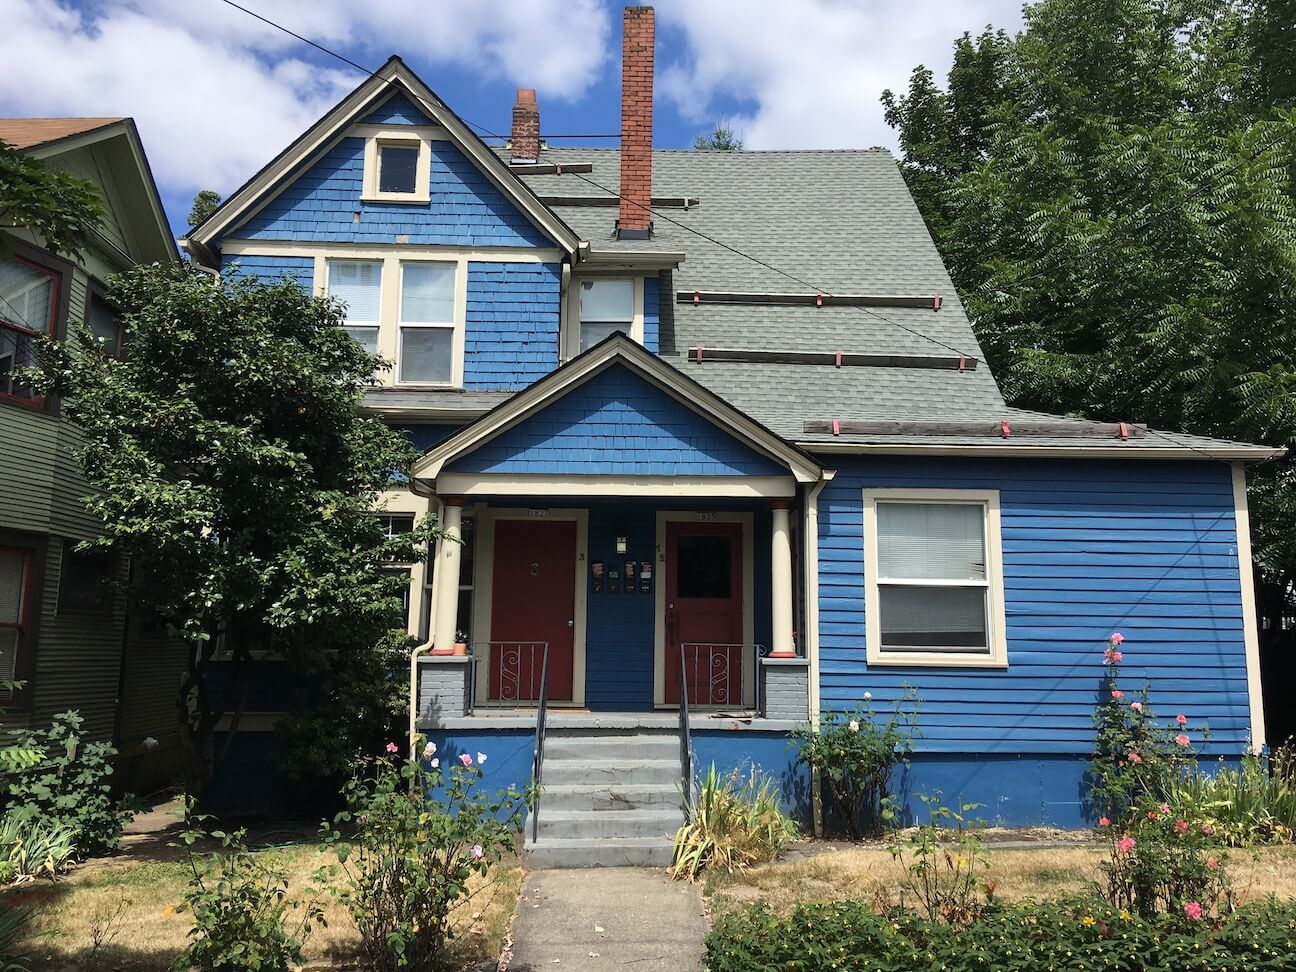 Rented out blue duplex